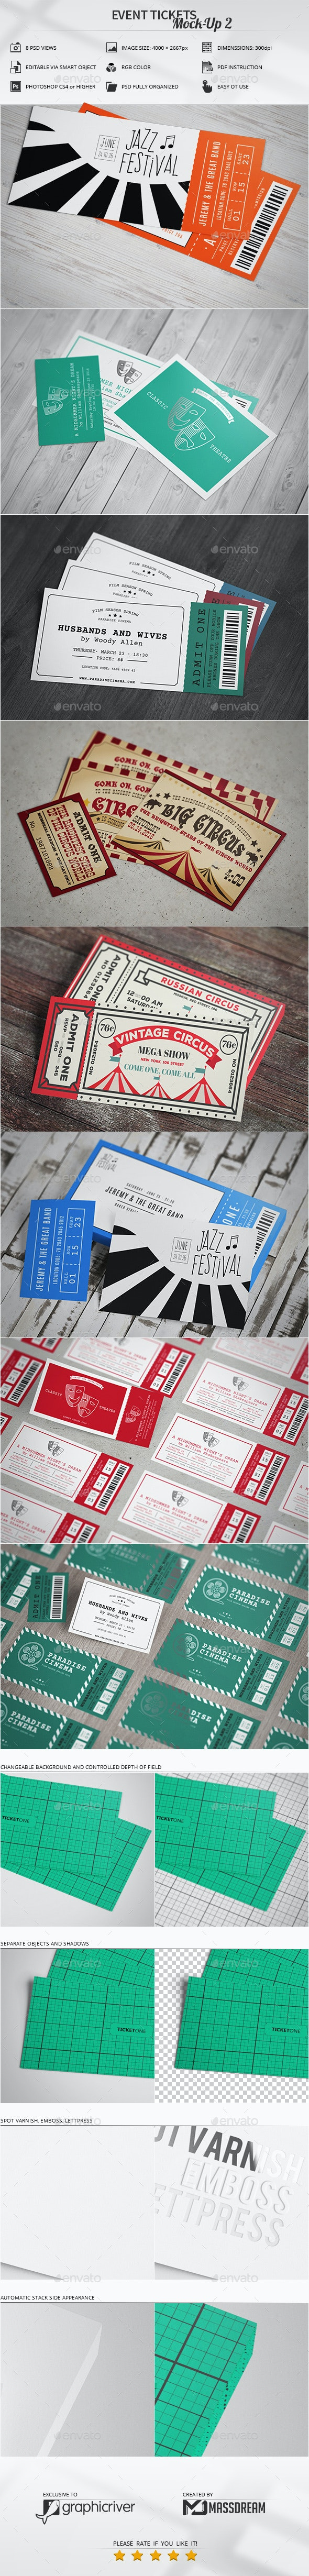 Event Tickets Mock-Up 2 - Miscellaneous Print